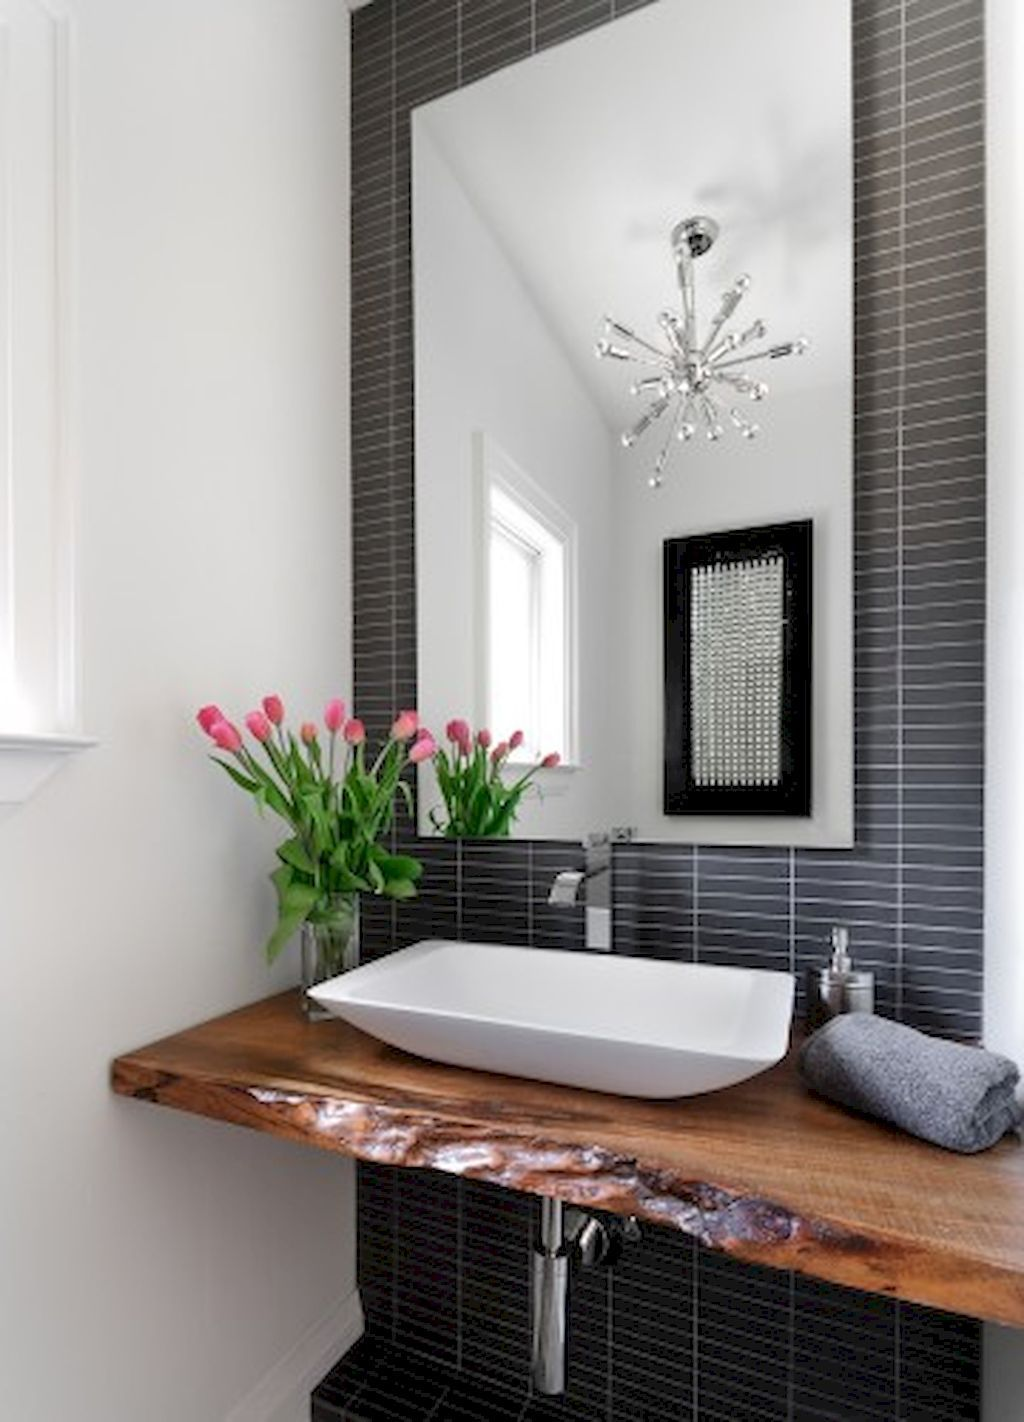 60 Cool Farmhouse Powder Room Design Ideas With Rustic | Rustic ...